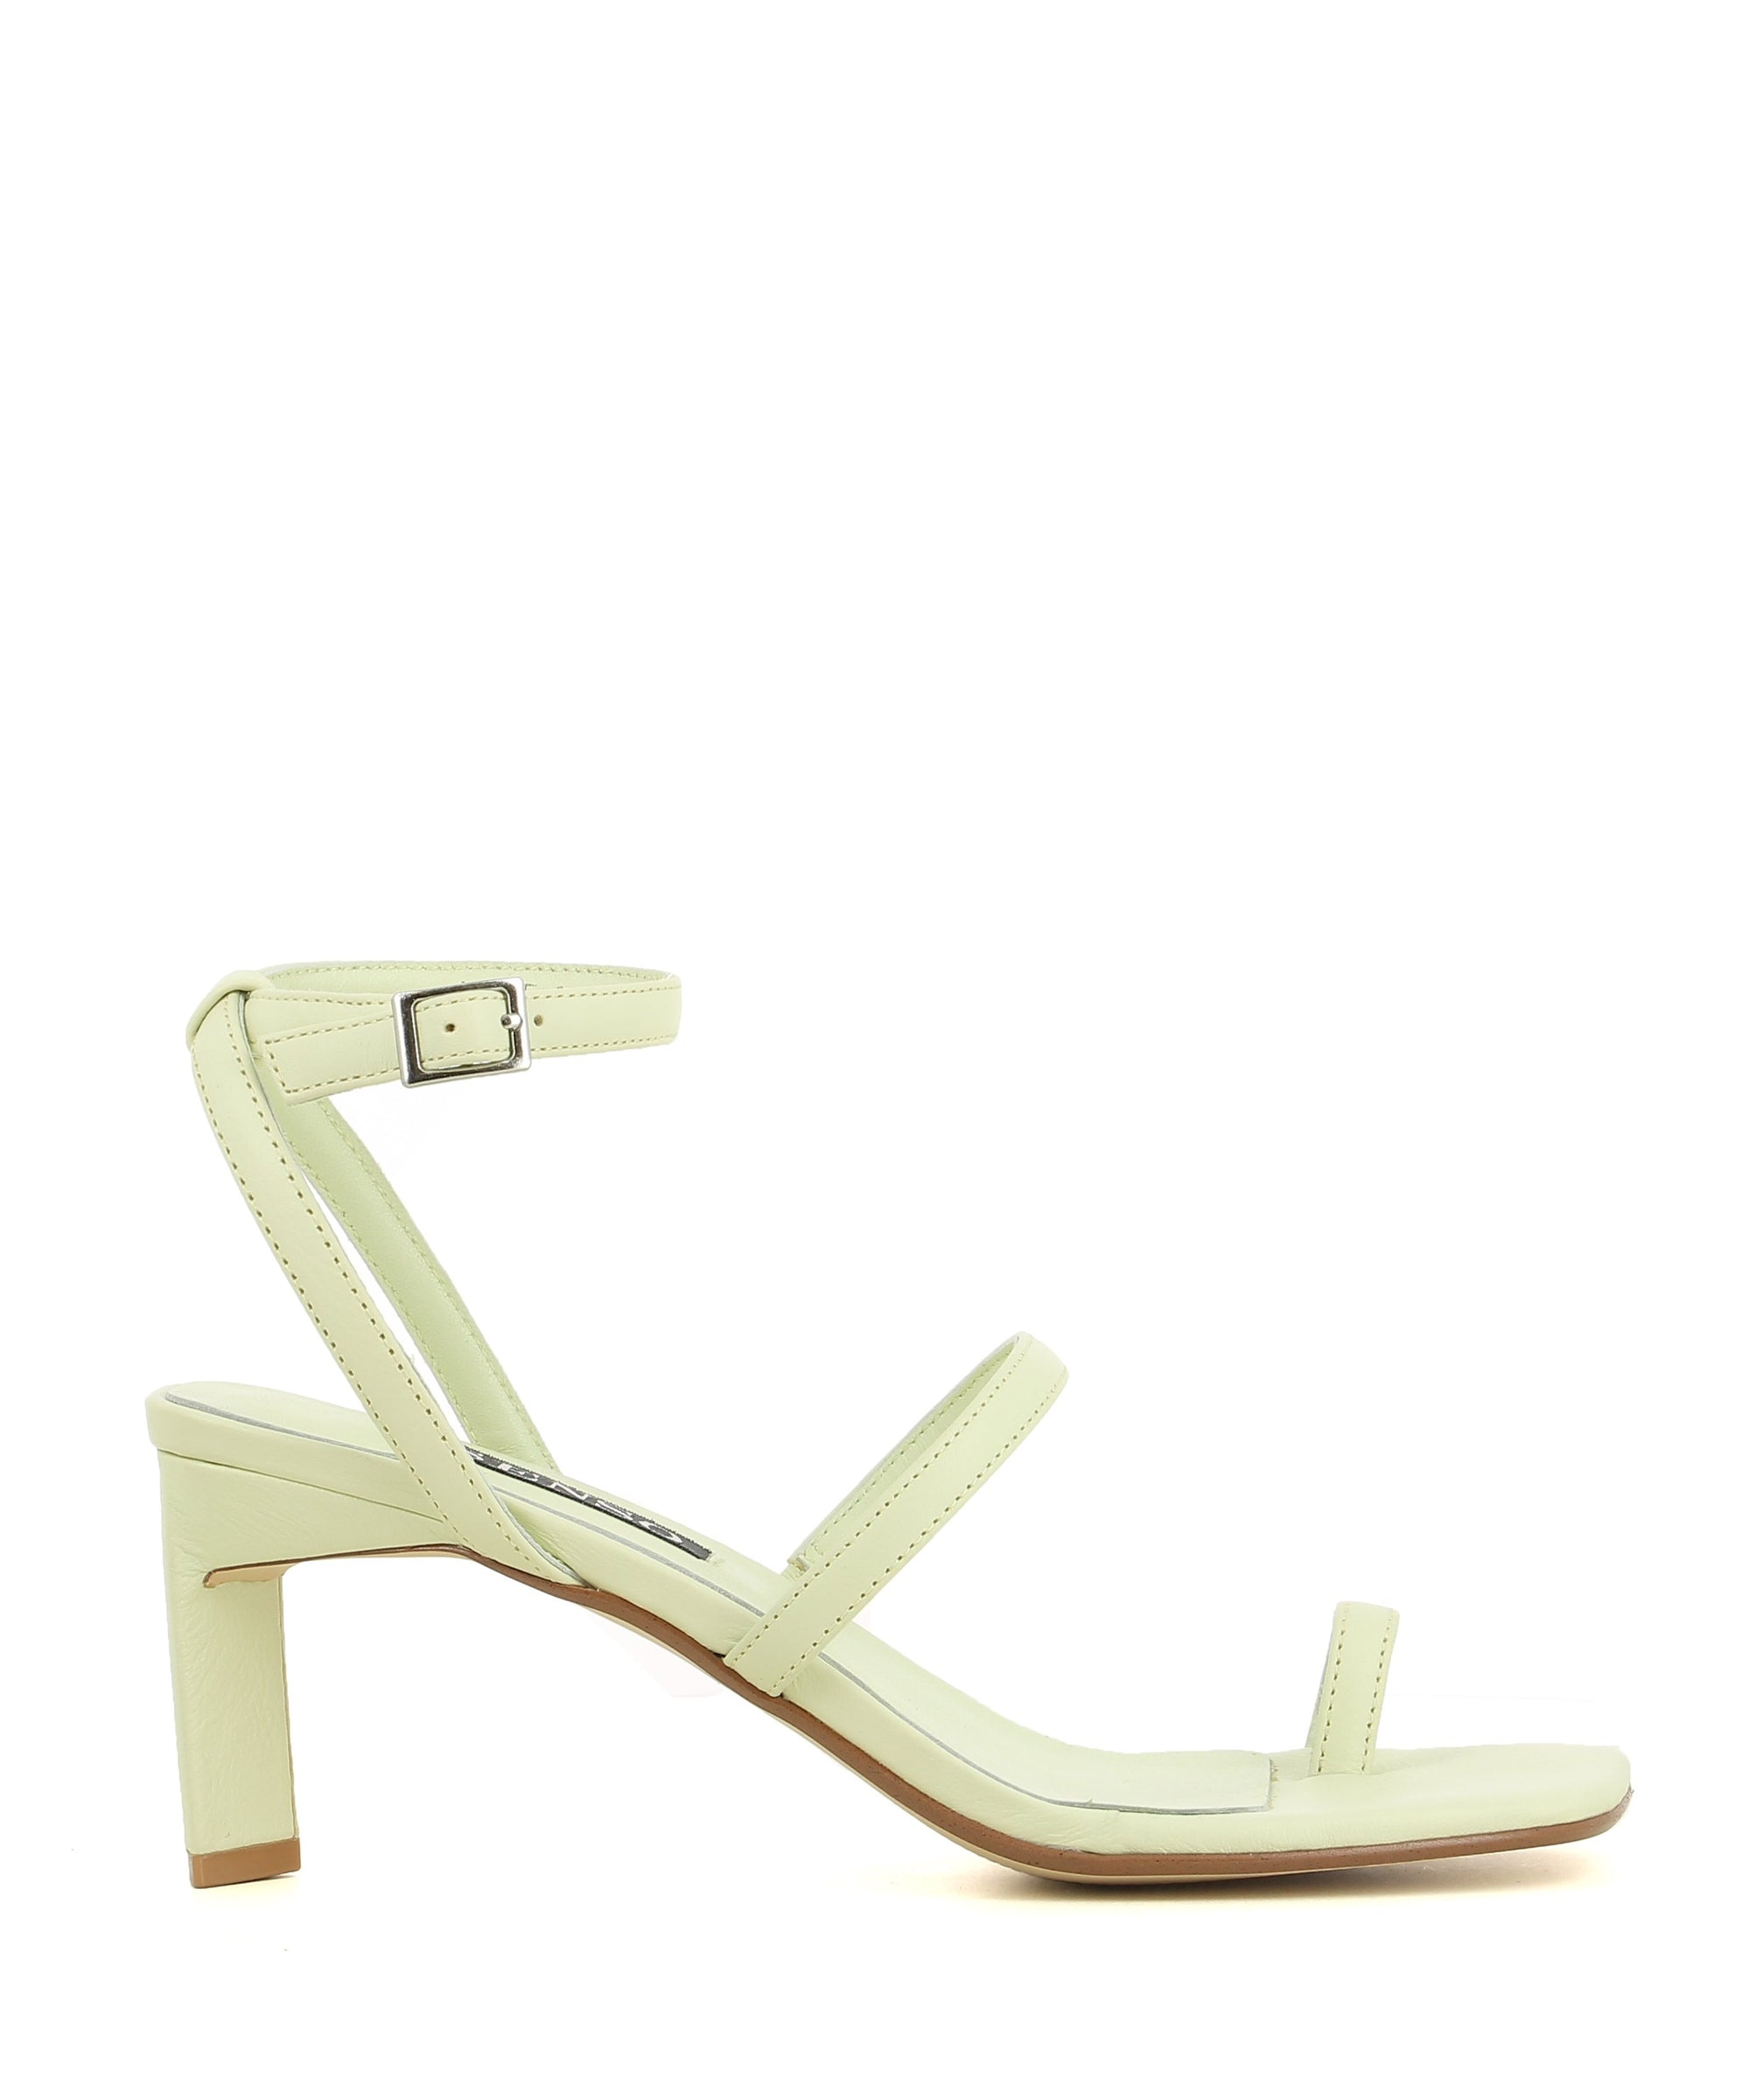 A chic pastel lime green leather strappy sandal by Senso. The 'Millie' has a silver buckle fastening and features an architectural heel and a square toe.